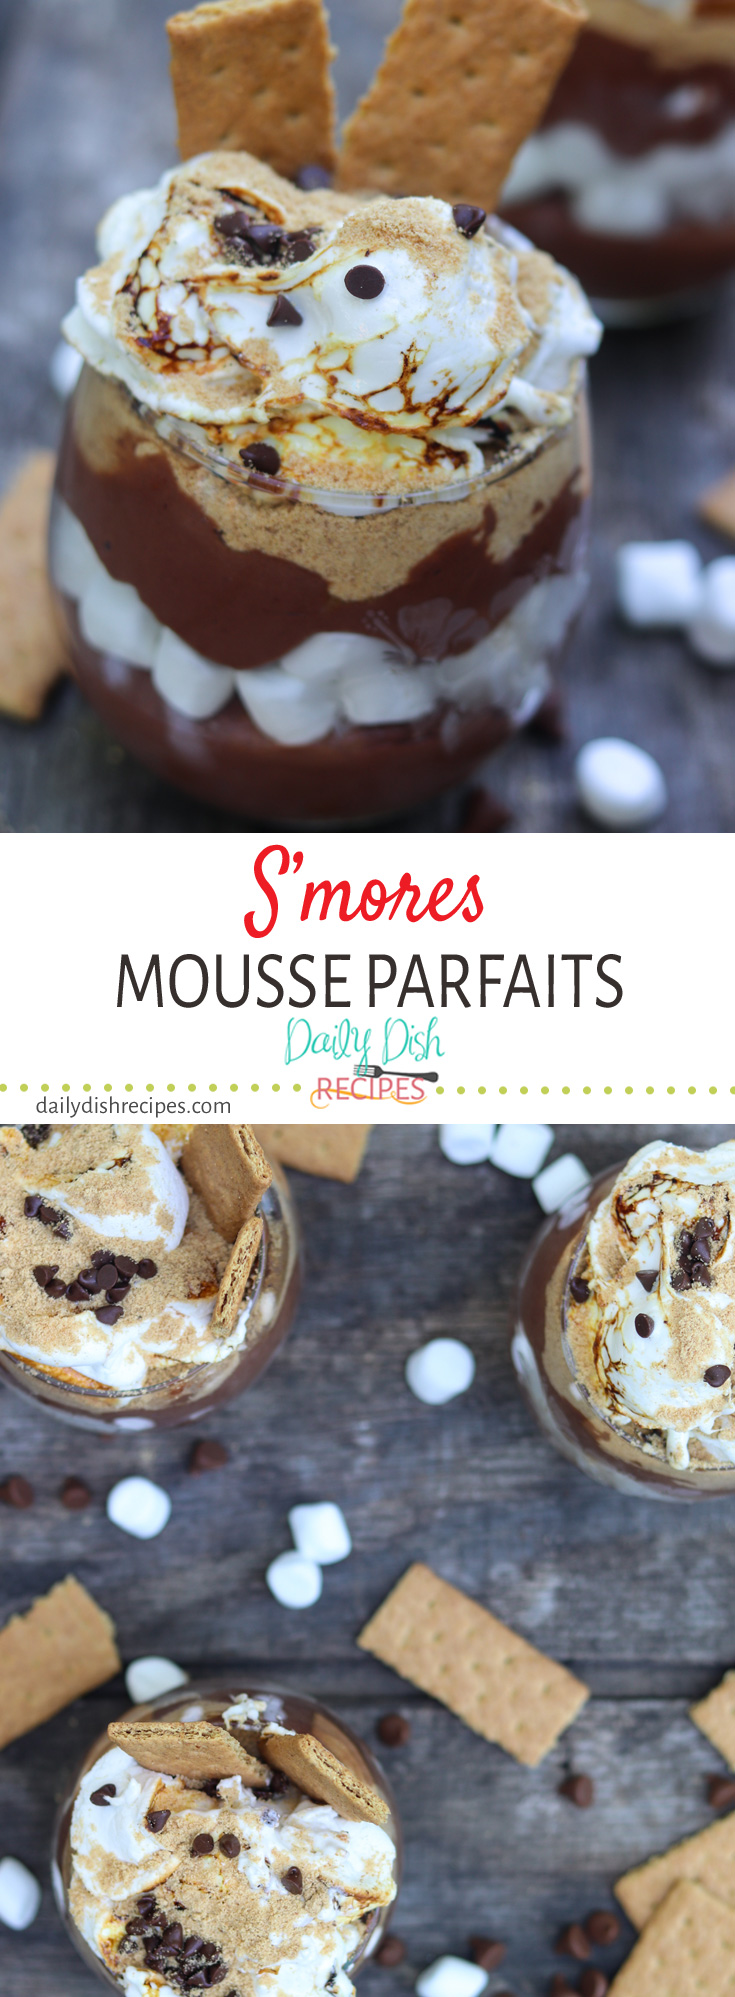 A decadent S'mores Mousse Parfait with layers of graham cracker, rich chocolate mousse, and marshmallows. Topped with toasted marshmallows, mini chocolate chips and a dusting of fine graham cracker powder. So wonderfully summer and absolutely delicious! The essential summer dessert recipe! #summerdessertweek #ad